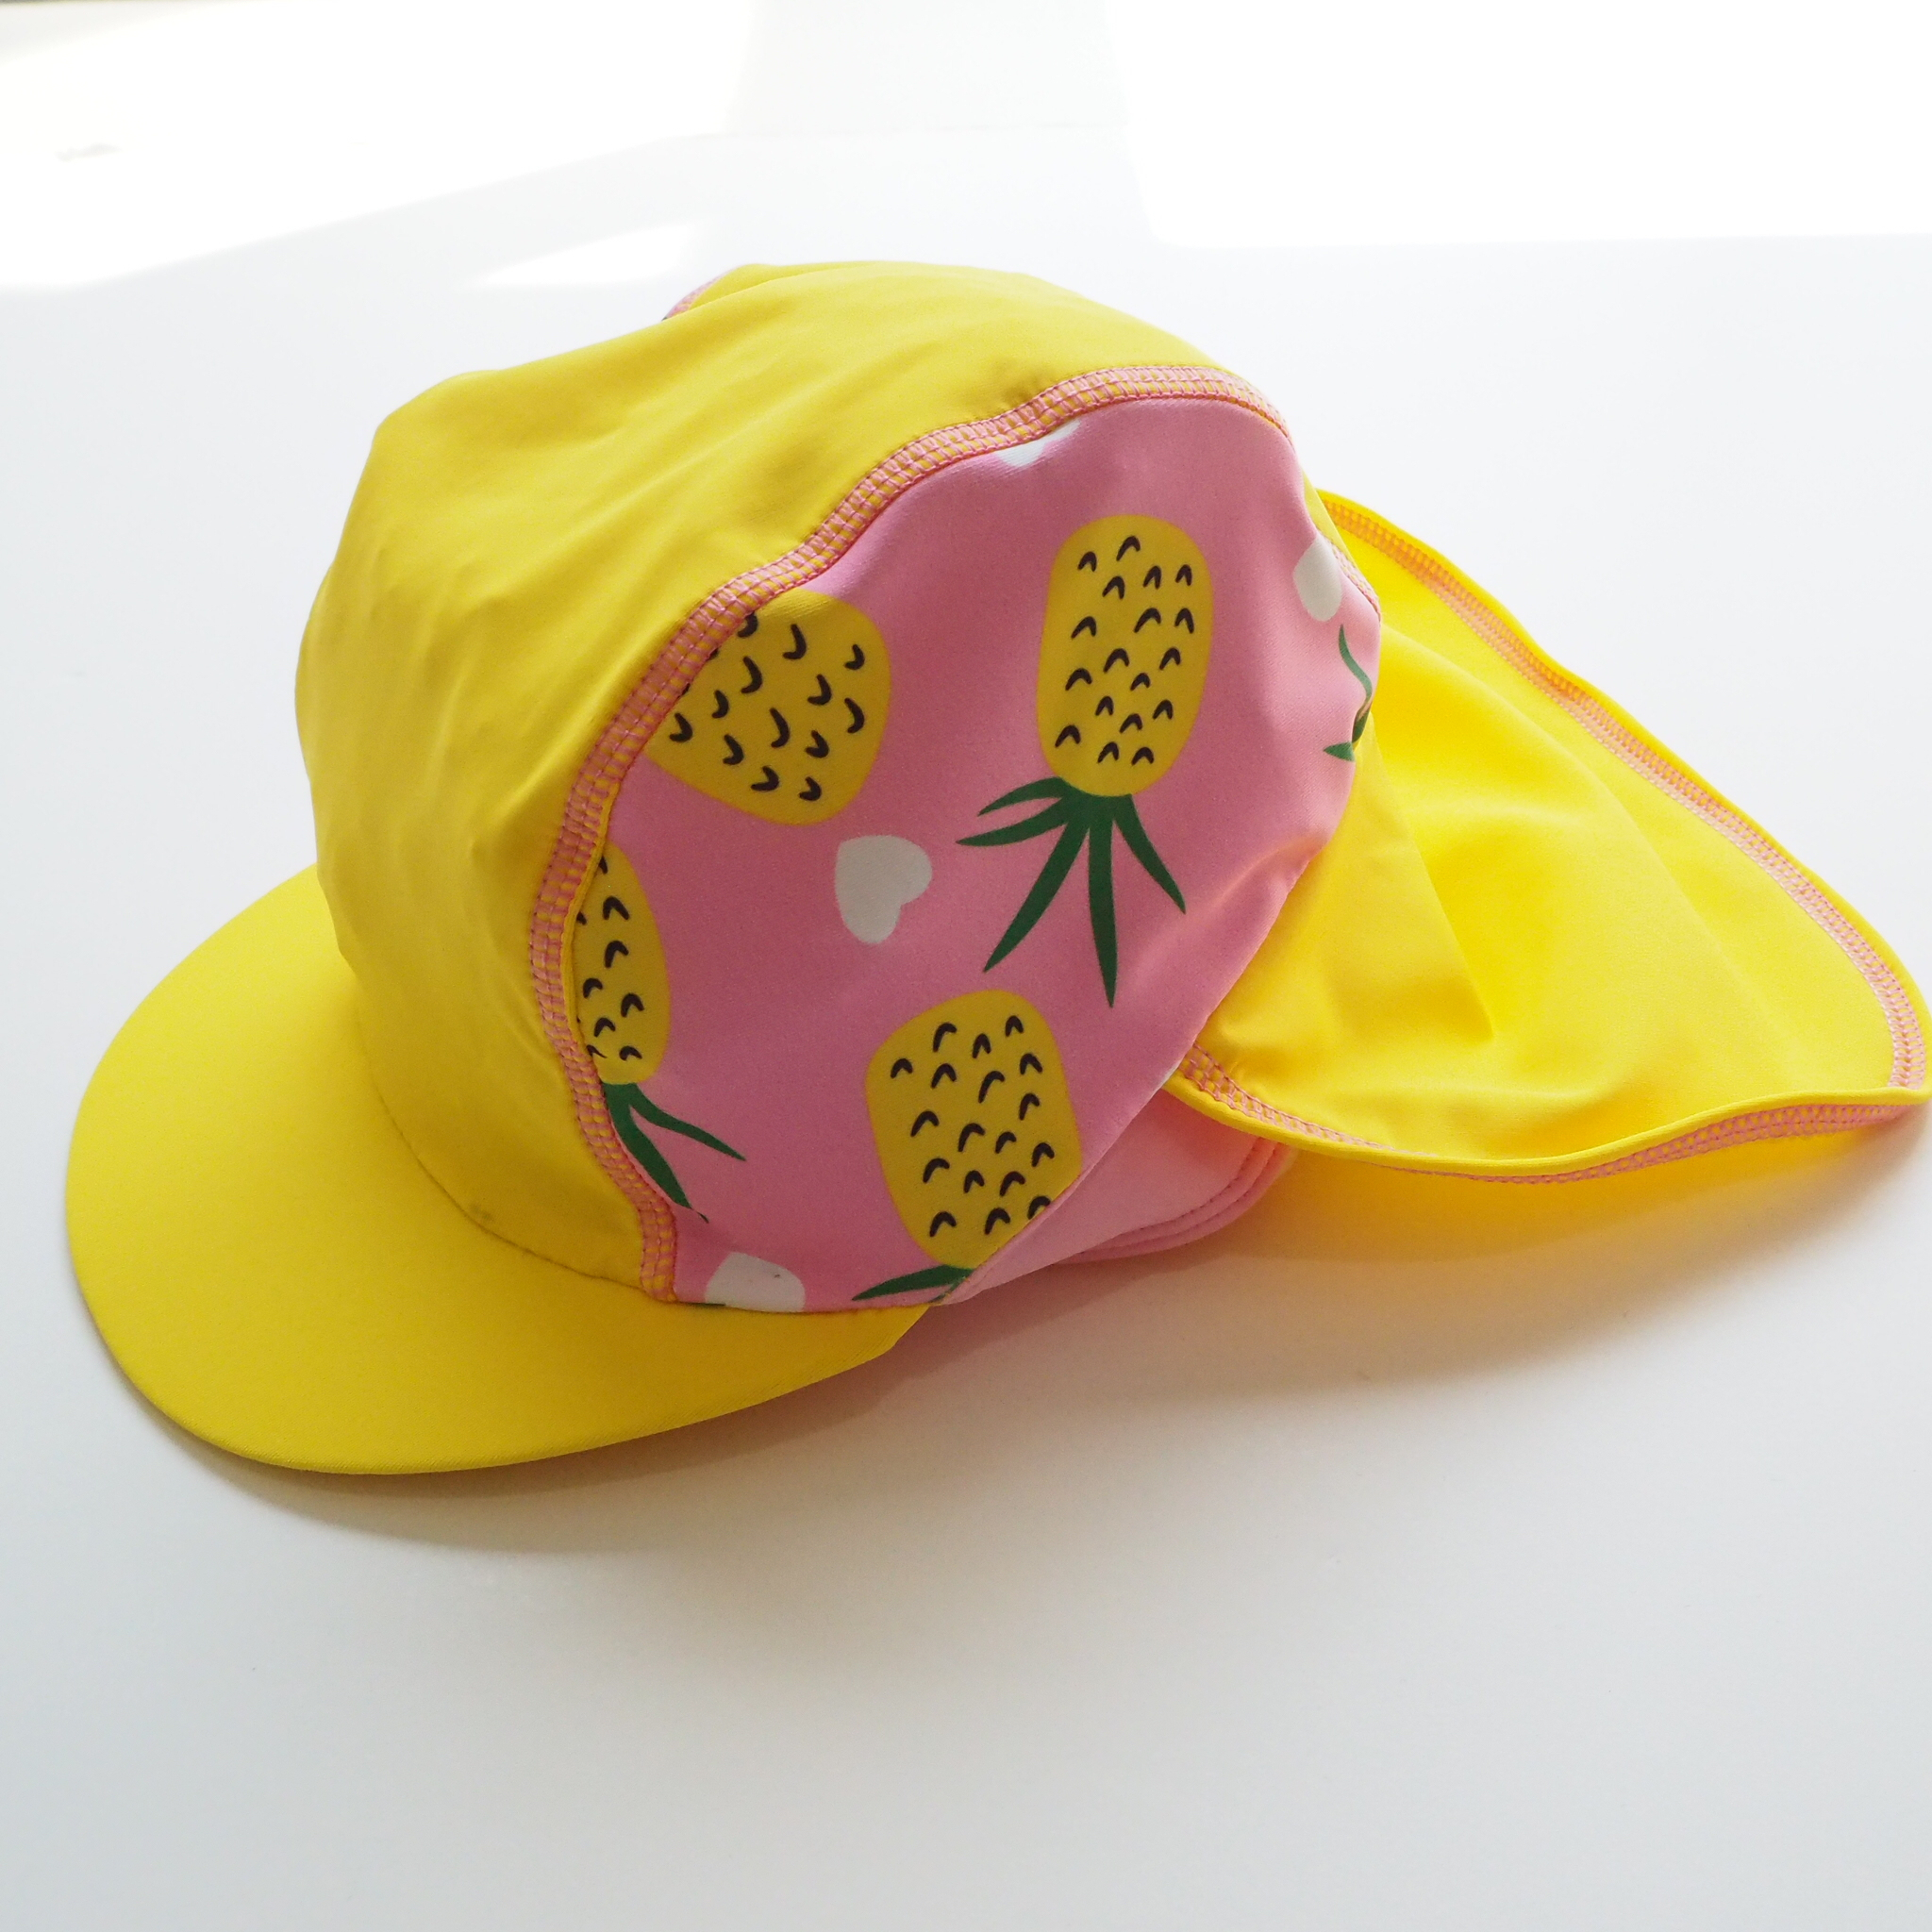 Holihi Accessories/ Sun-Shading Beach Cap (Phayam)